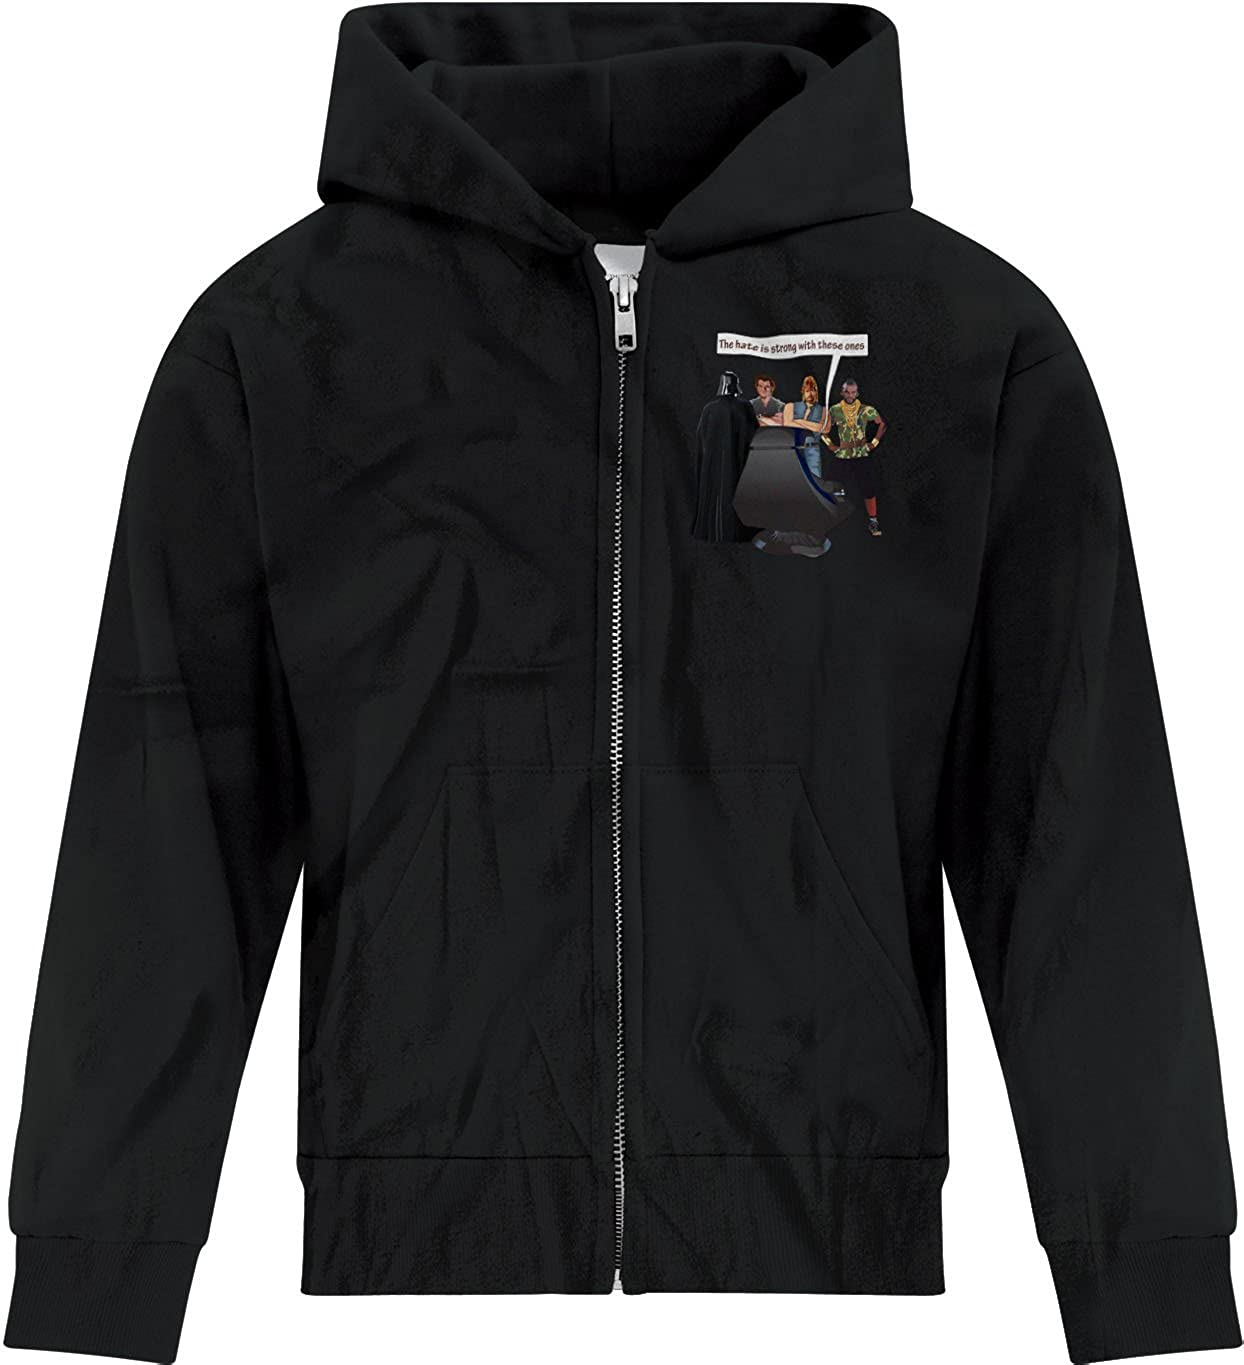 BSW Youth Boys The Hate is Strong Sidious Norris Vader Star Wars Zip Hoodie